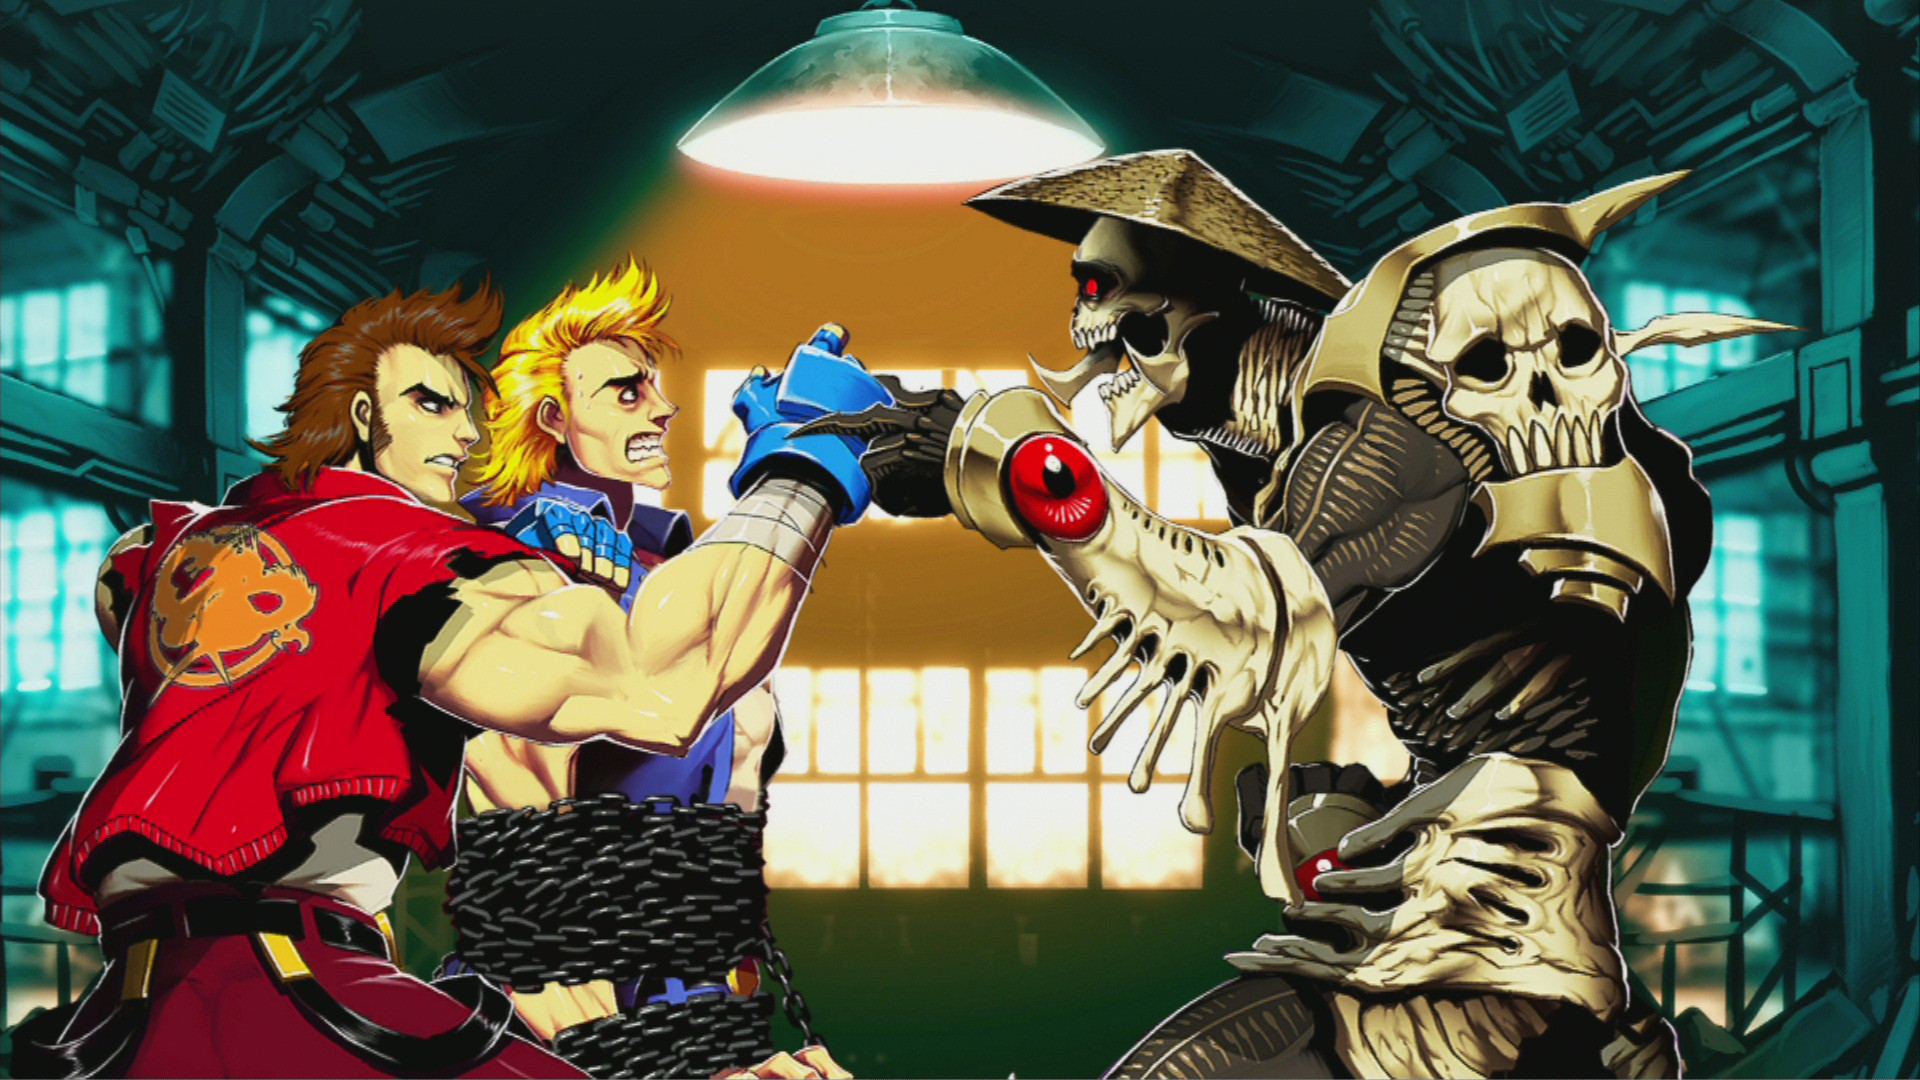 Res: 1920x1080, wallpaper #12 Wallpaper from Double Dragon: Neon